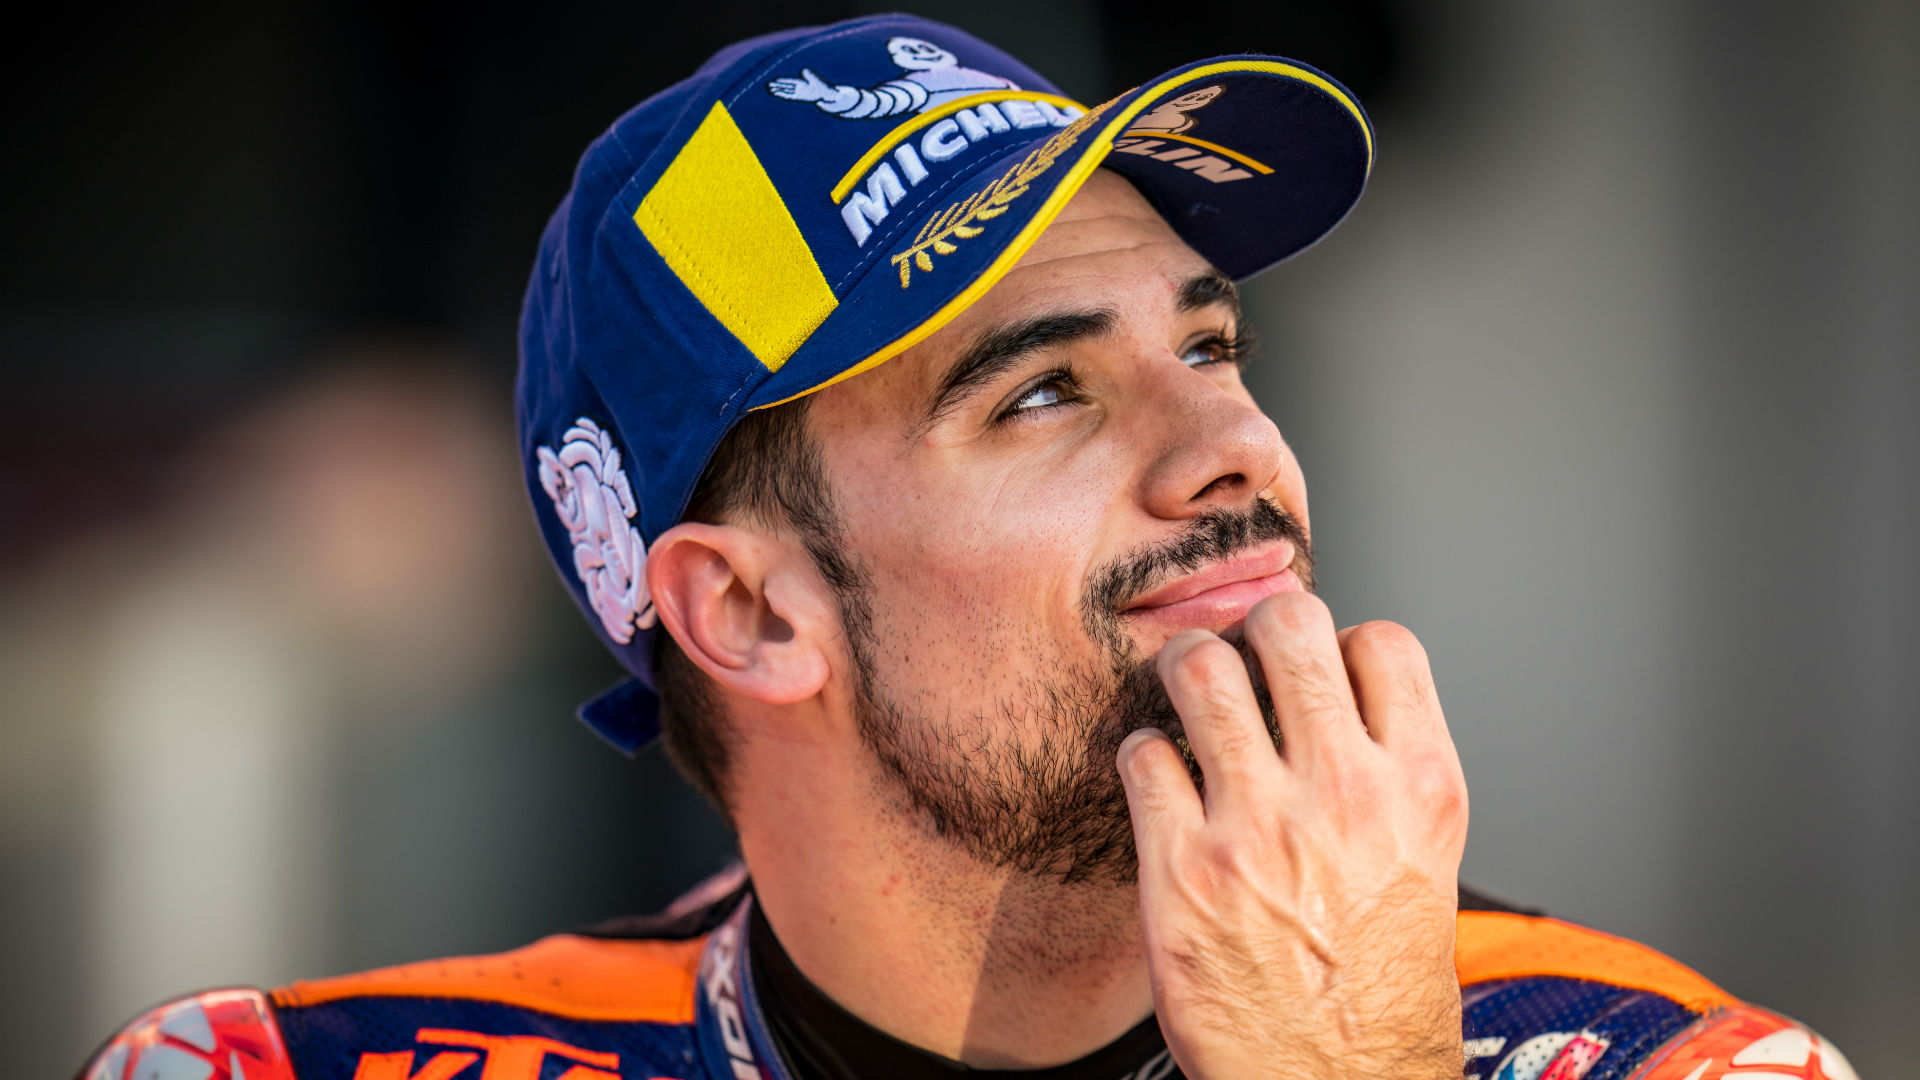 The Portuguese Grand Prix provided home comforts for Miguel Oliveira, who reflected on the competitive nature of the 2020 season.